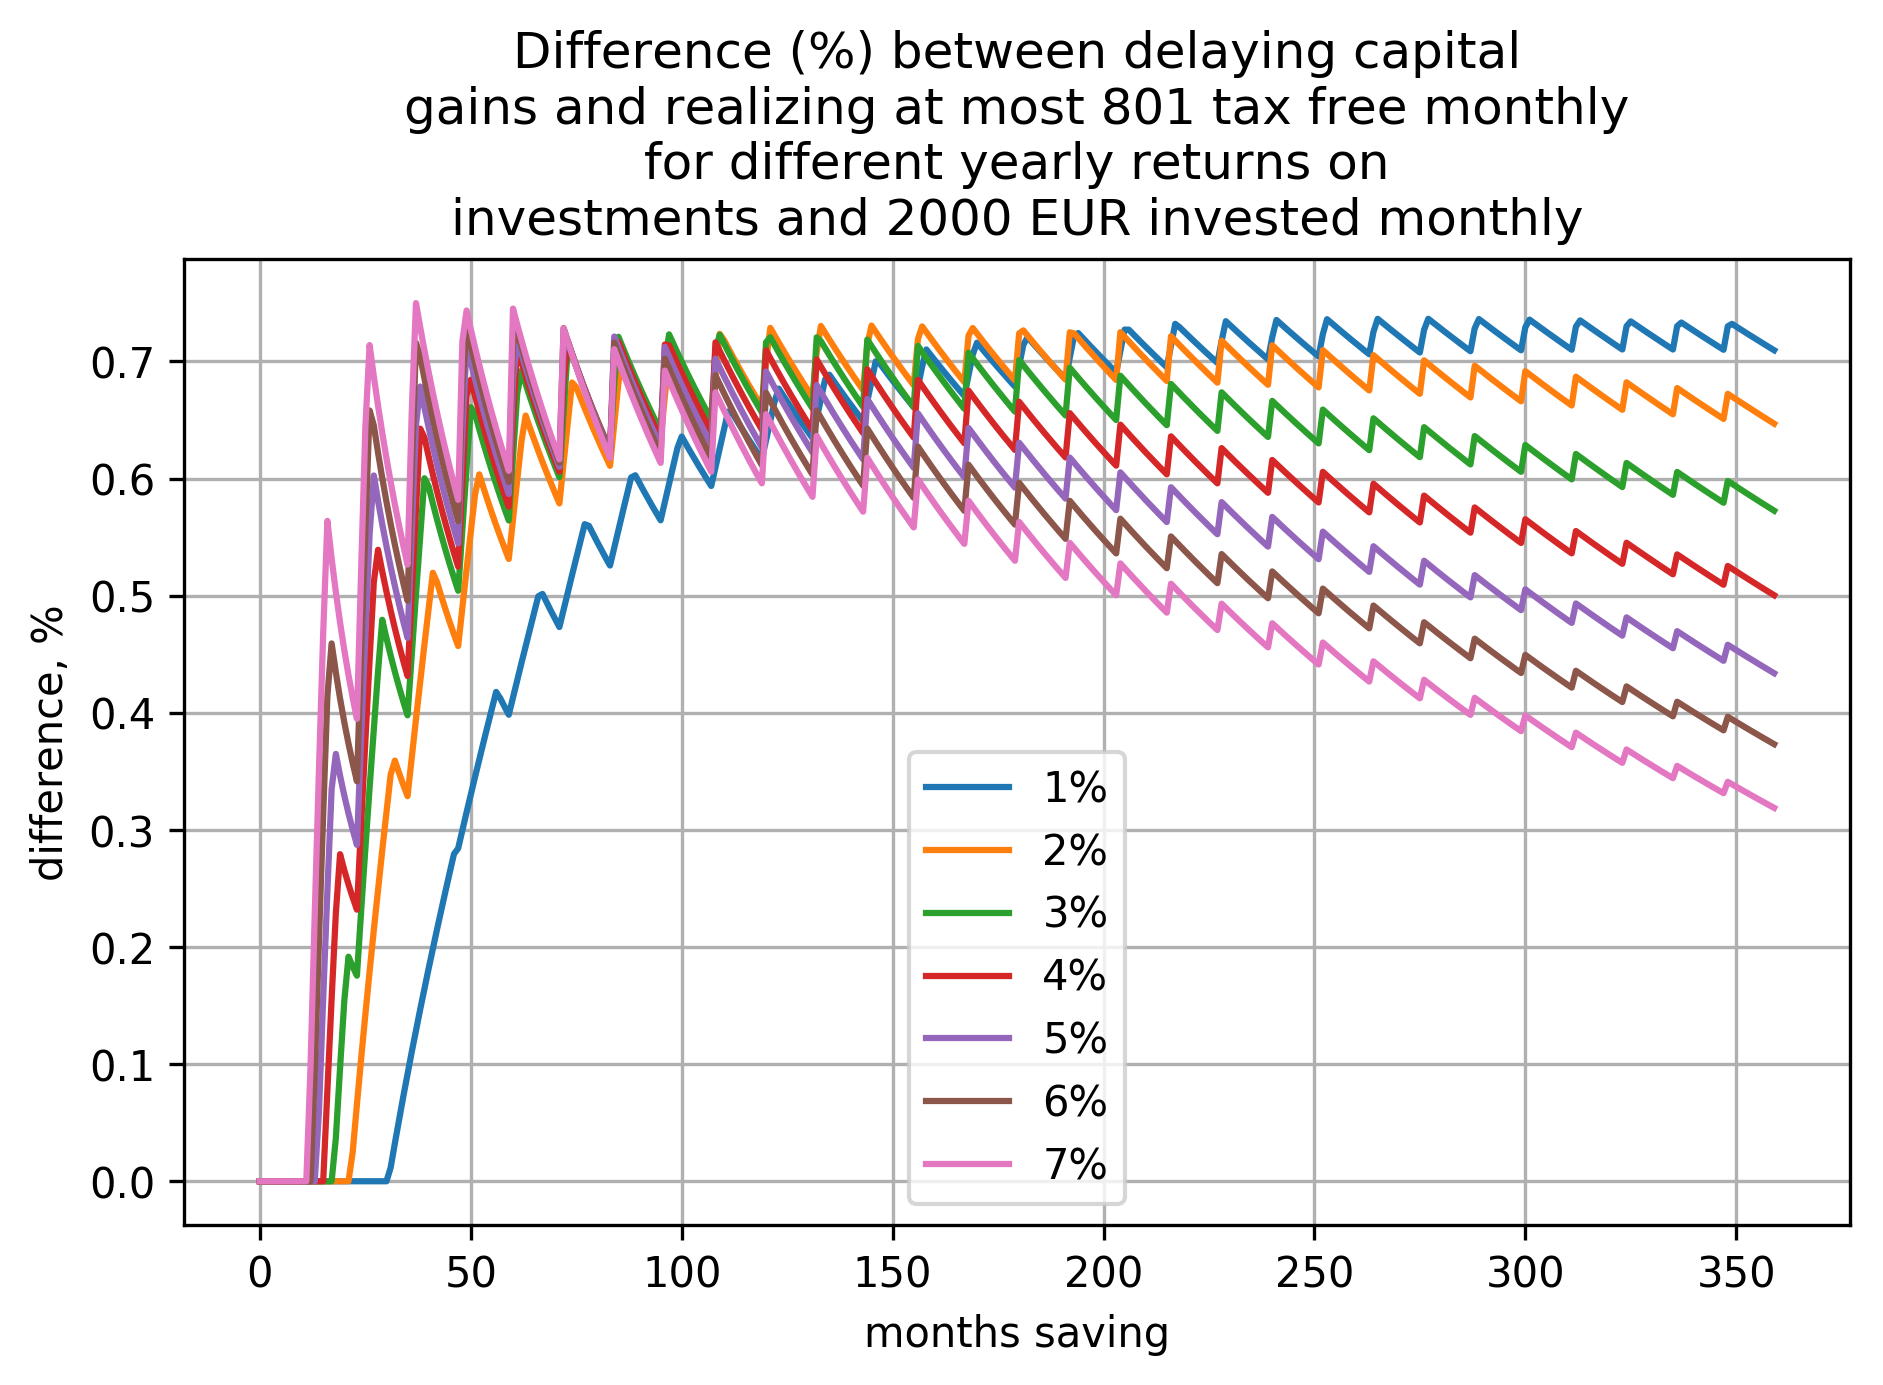 a plot showing how difference (in percents) between the two cases (delaying capital gains and realizing at most 801€ tax free yearly) depends on time saving and yearly return on investment when investing 2000€ per month